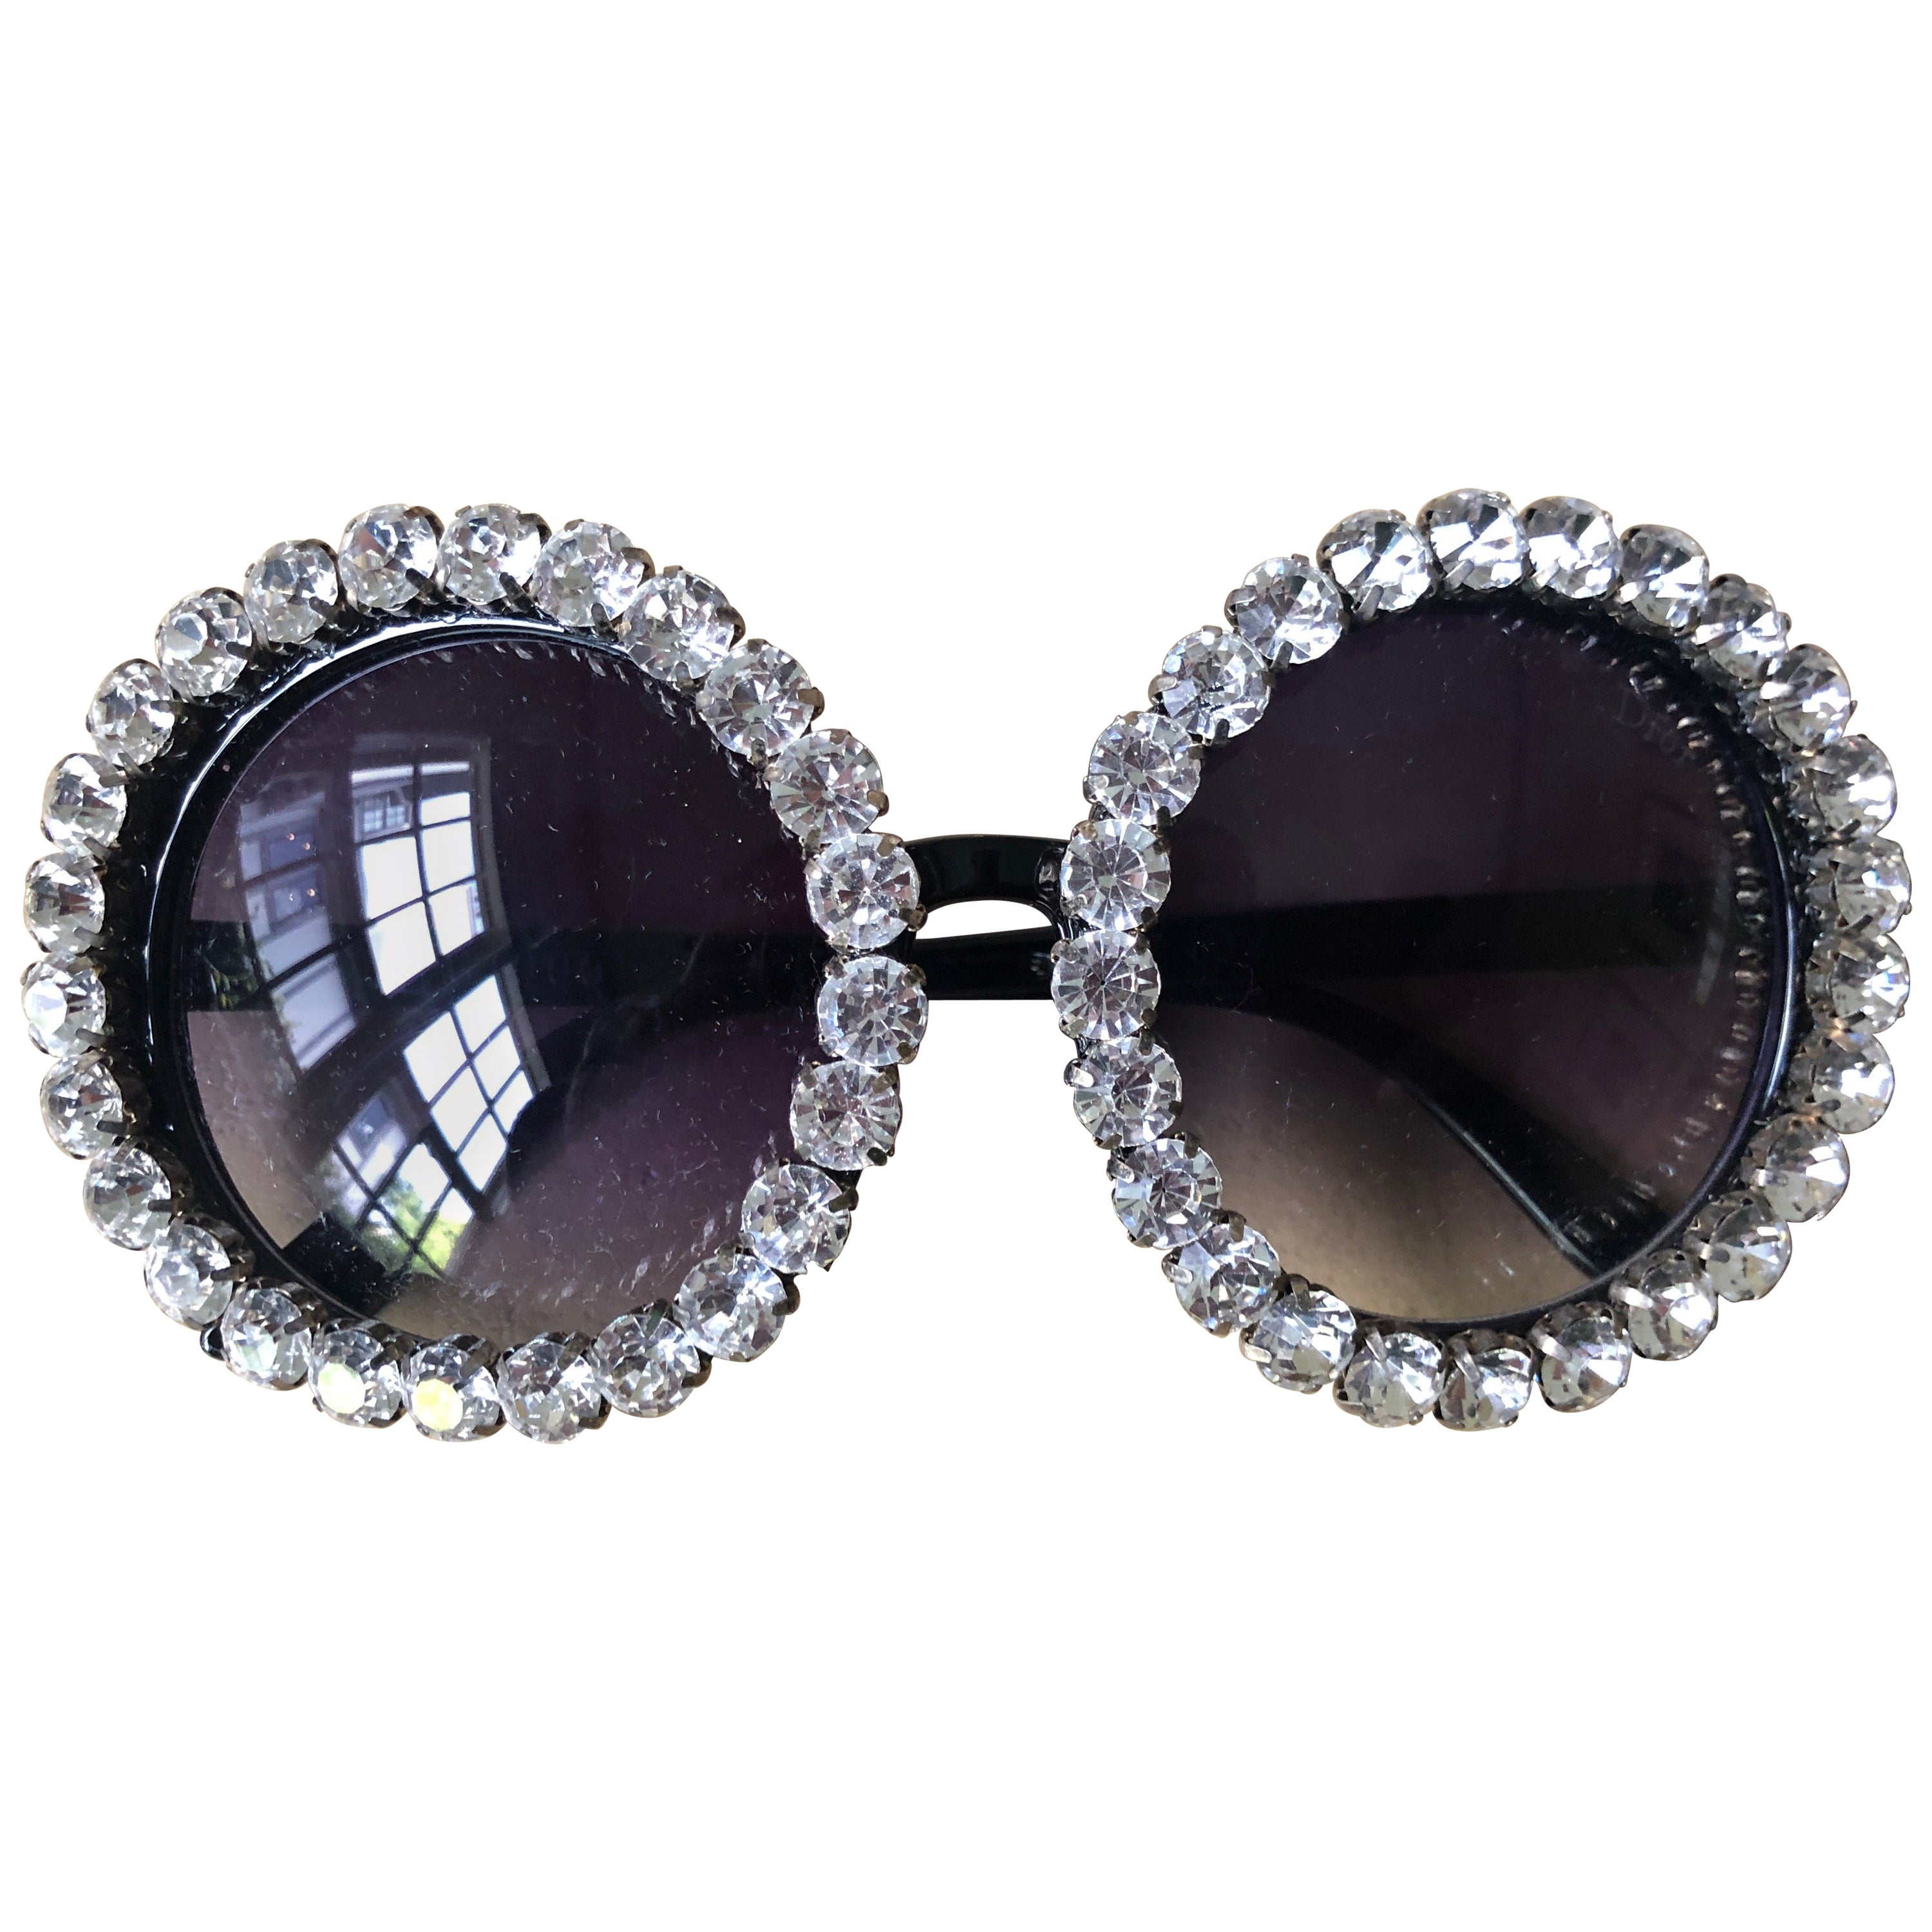 5bfcebaaa18 Christian Dior Vintage Oversize Swarovski Crystal Round Sunglasses in Case  For Sale at 1stdibs